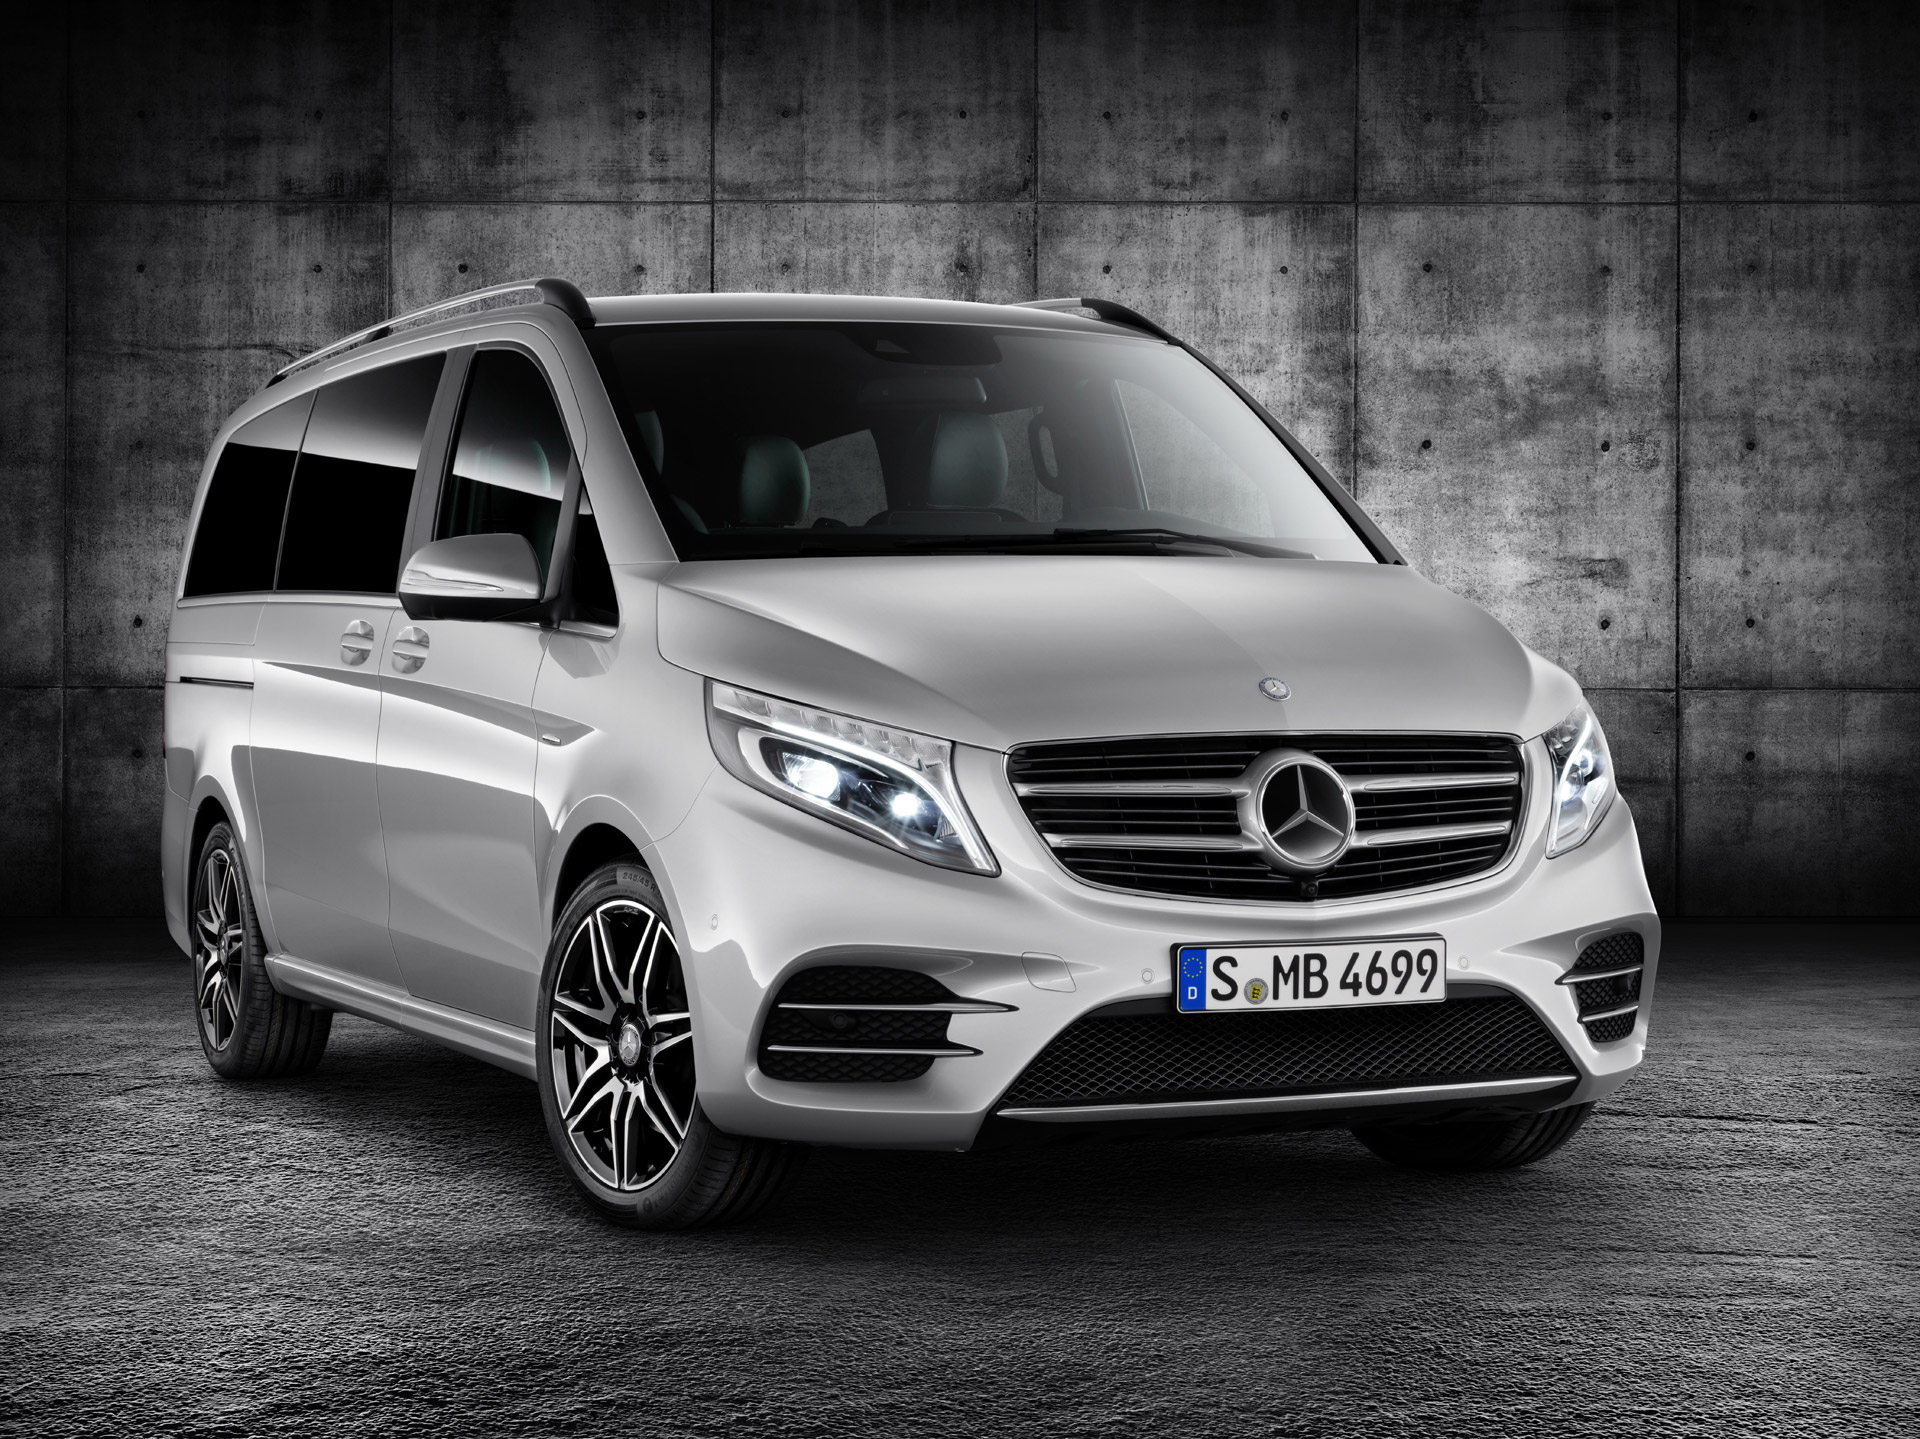 https://images.hgmsites.net/hug/2015-mercedes-benz-v-class-equipped-with-amg-line-package_100524134_h.jpg